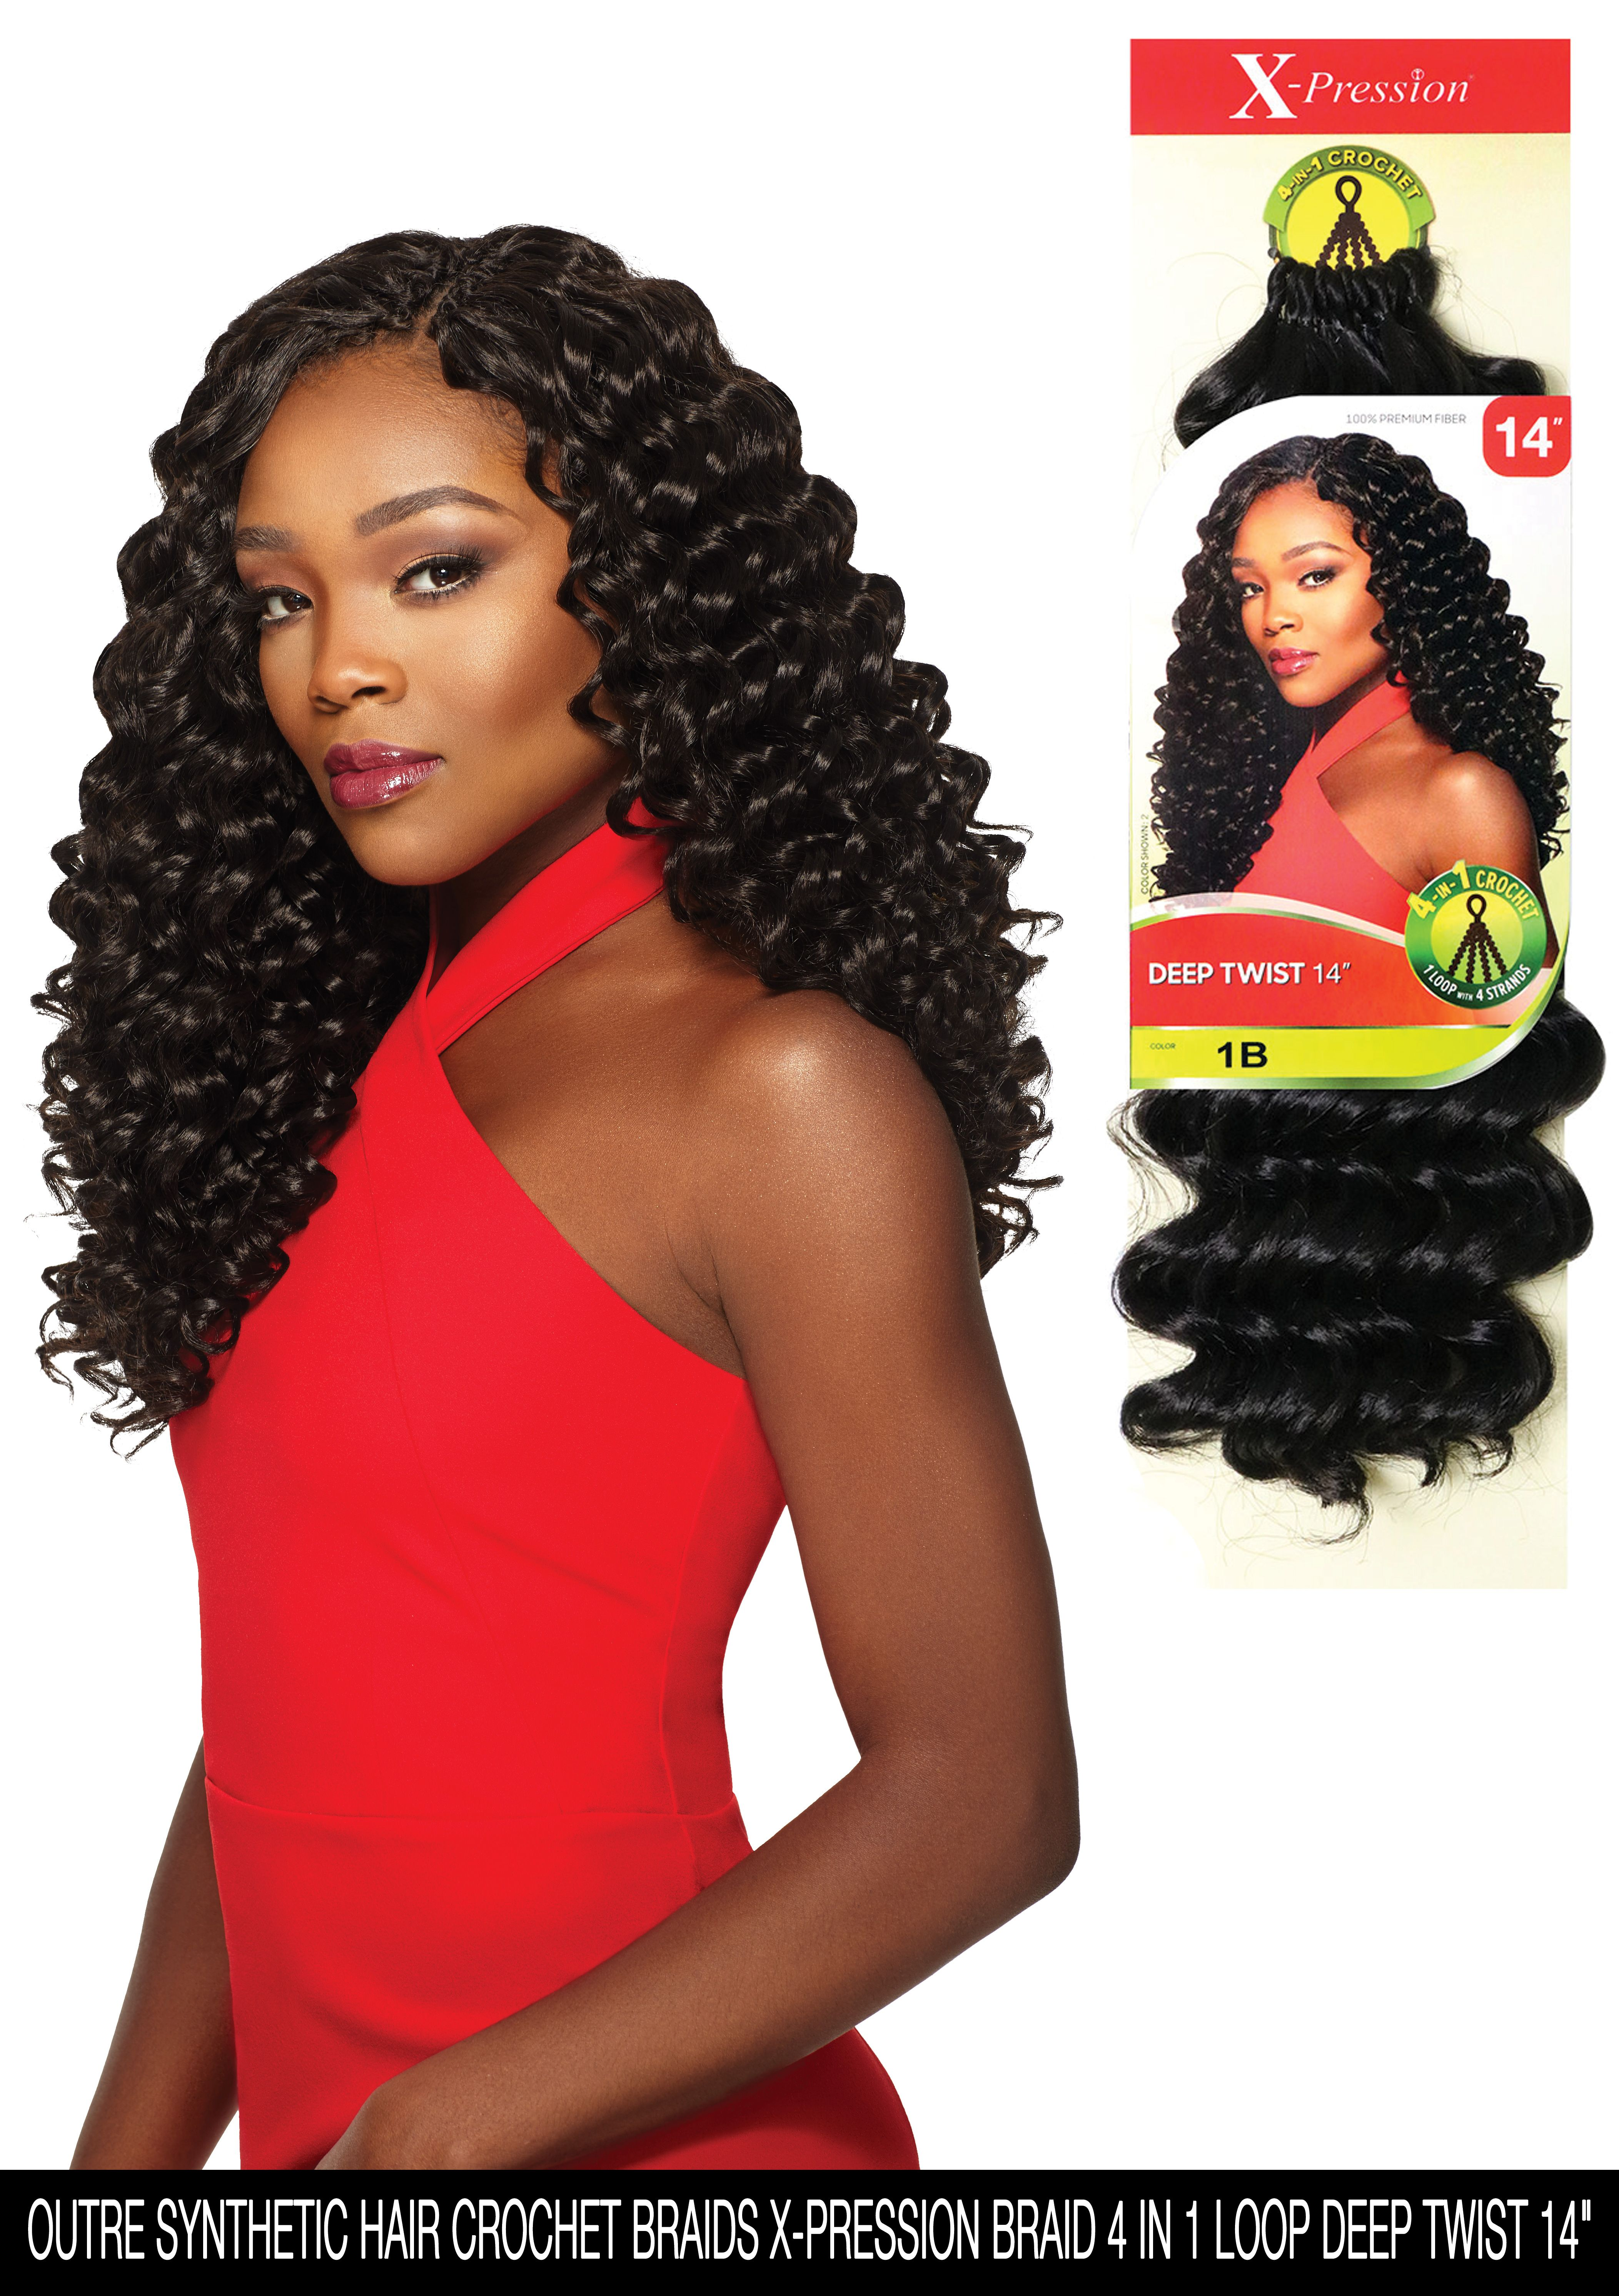 Check Out This Hot Item OUTRE SYNTHETIC HAIR CROCHET BRAIDS X